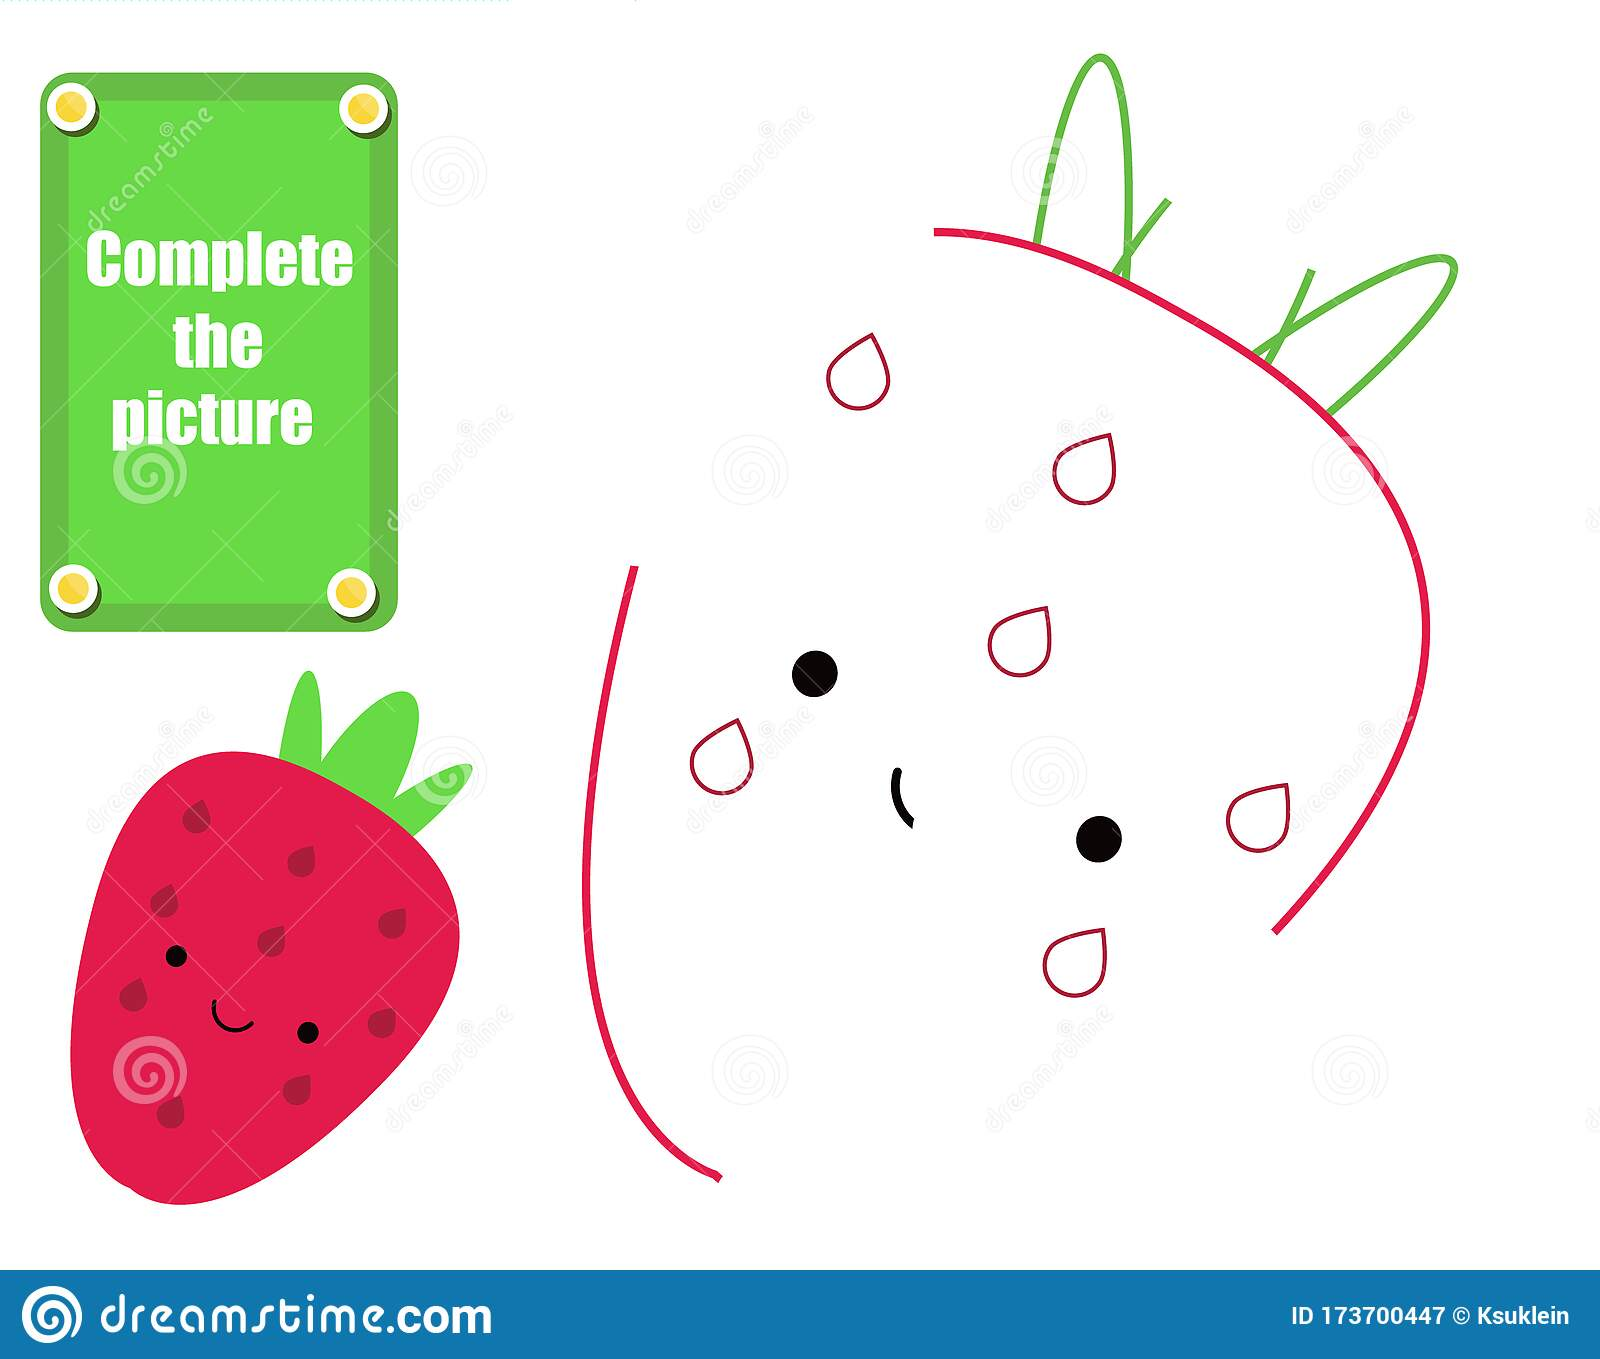 Complete Picture Educational Children Game Draw